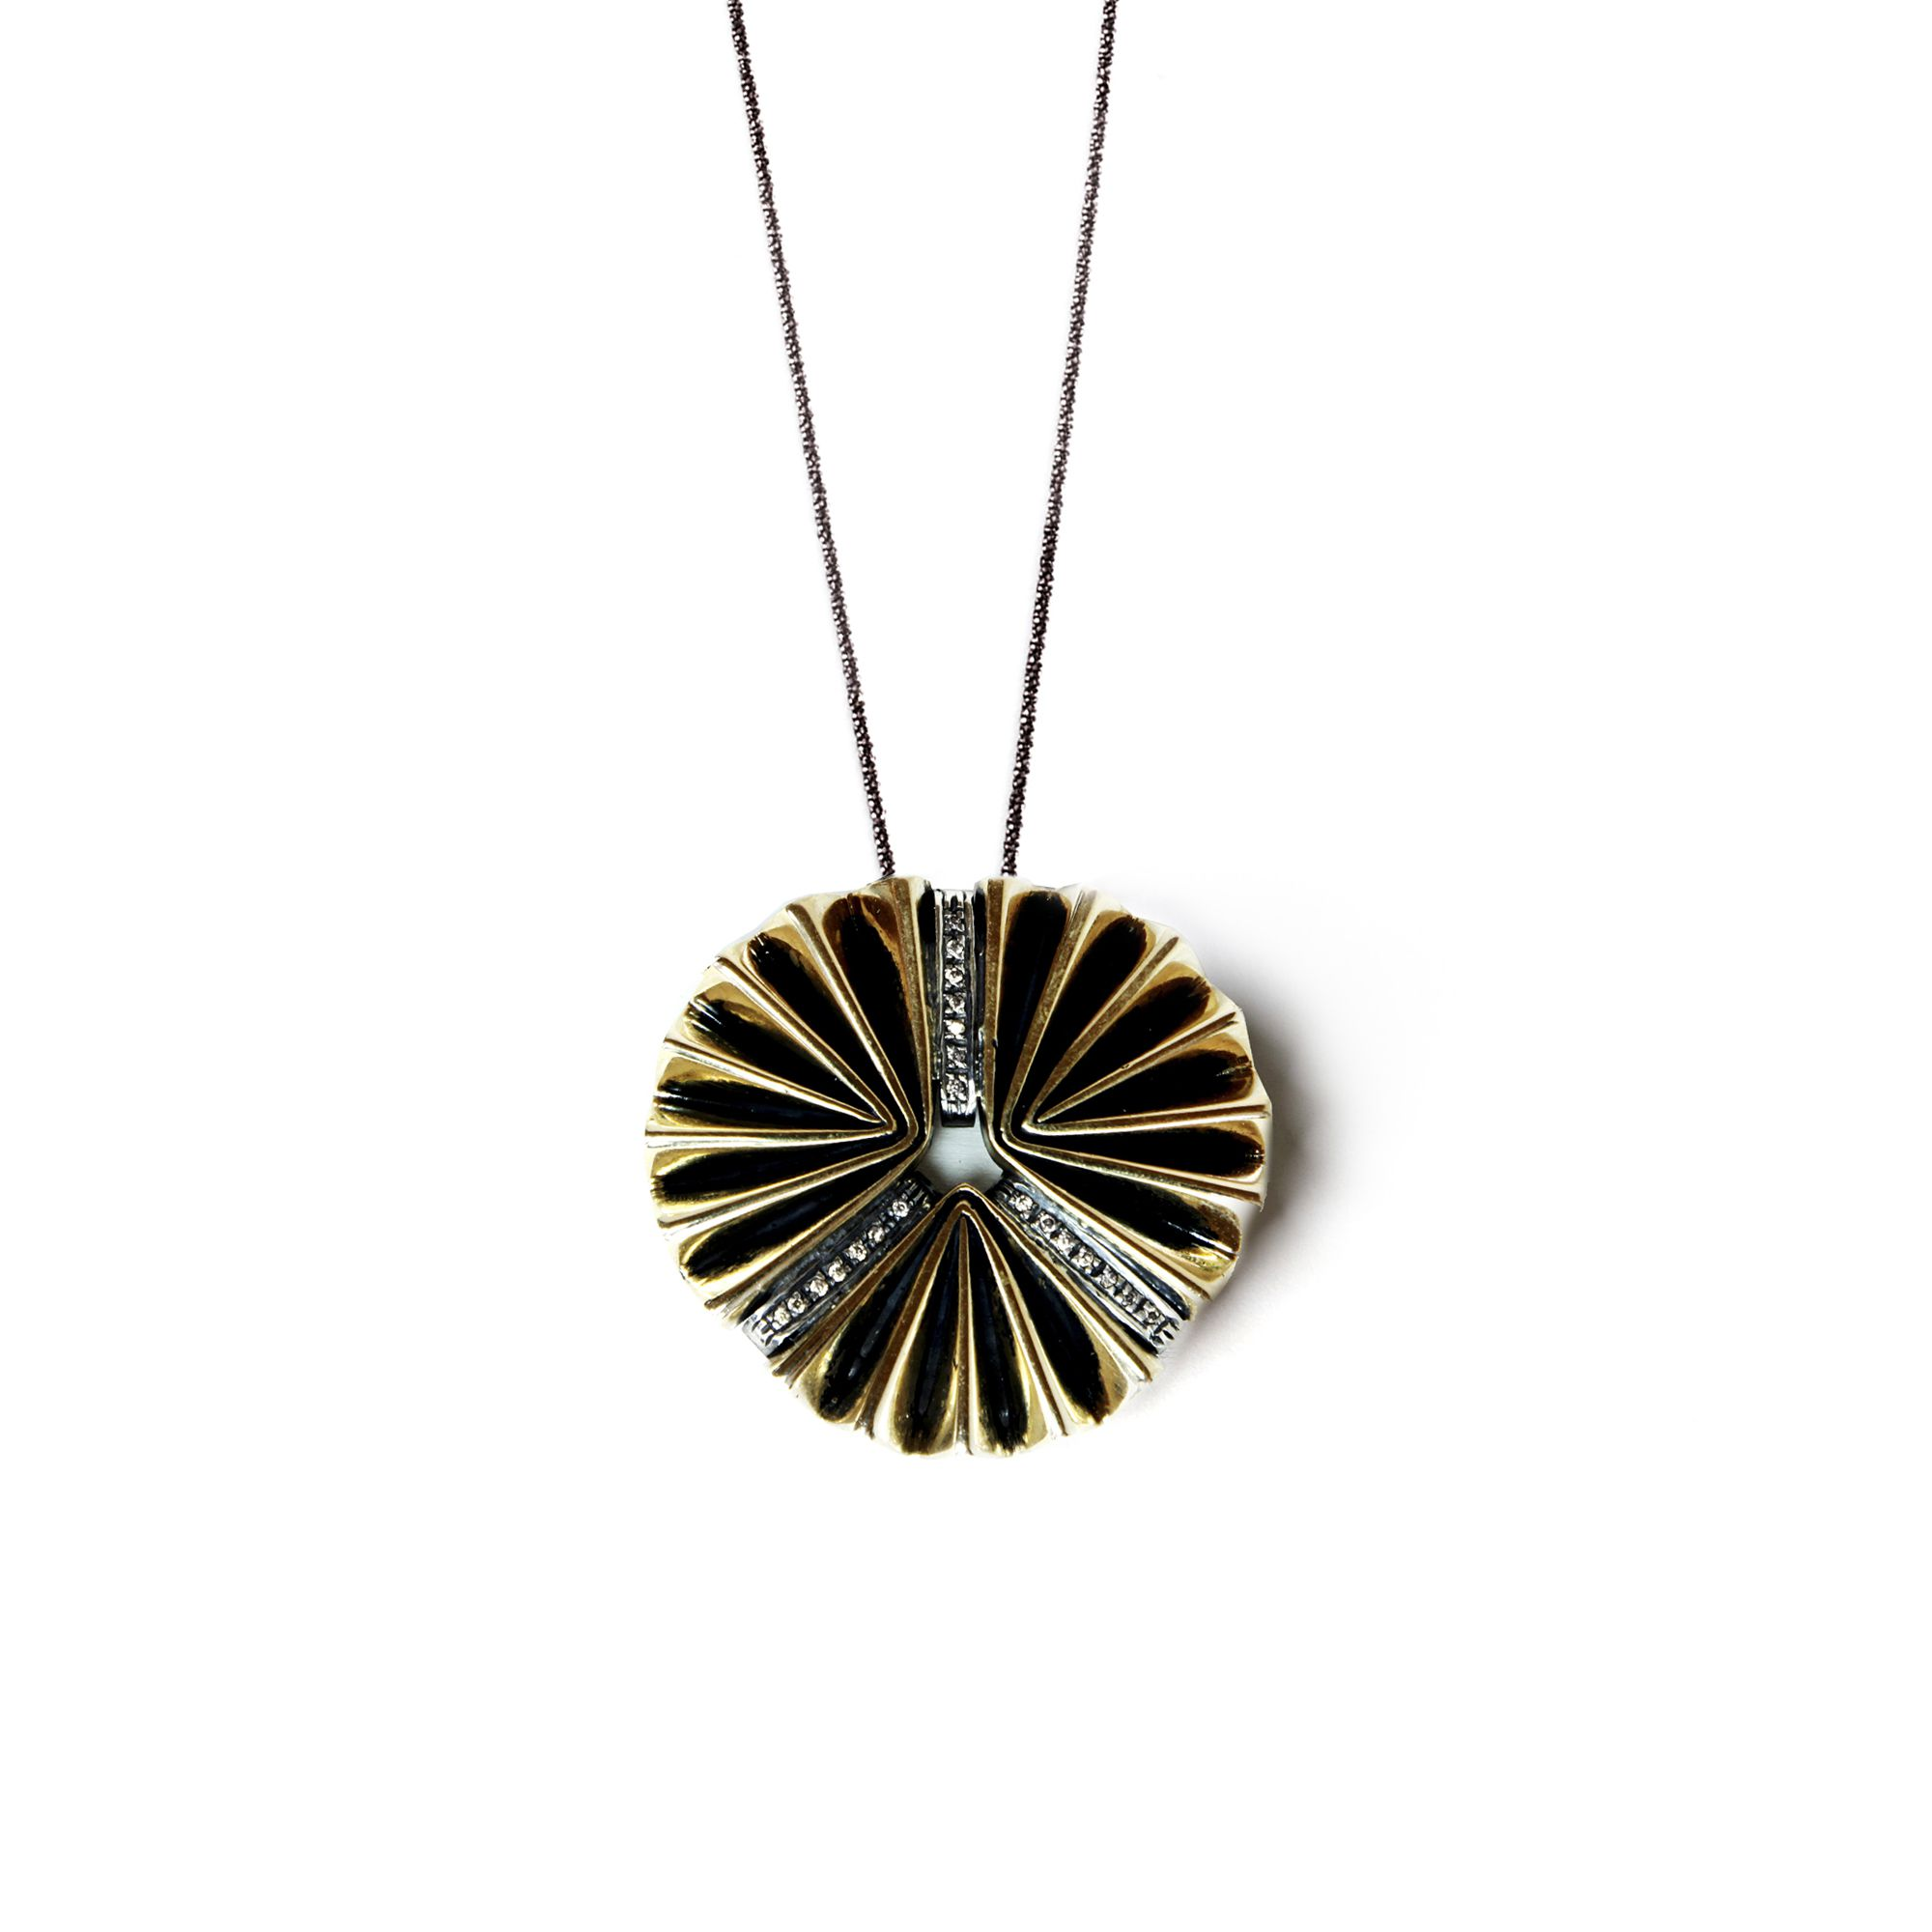 3 element 'fan' pendant necklace in bronze, silver and sapphires